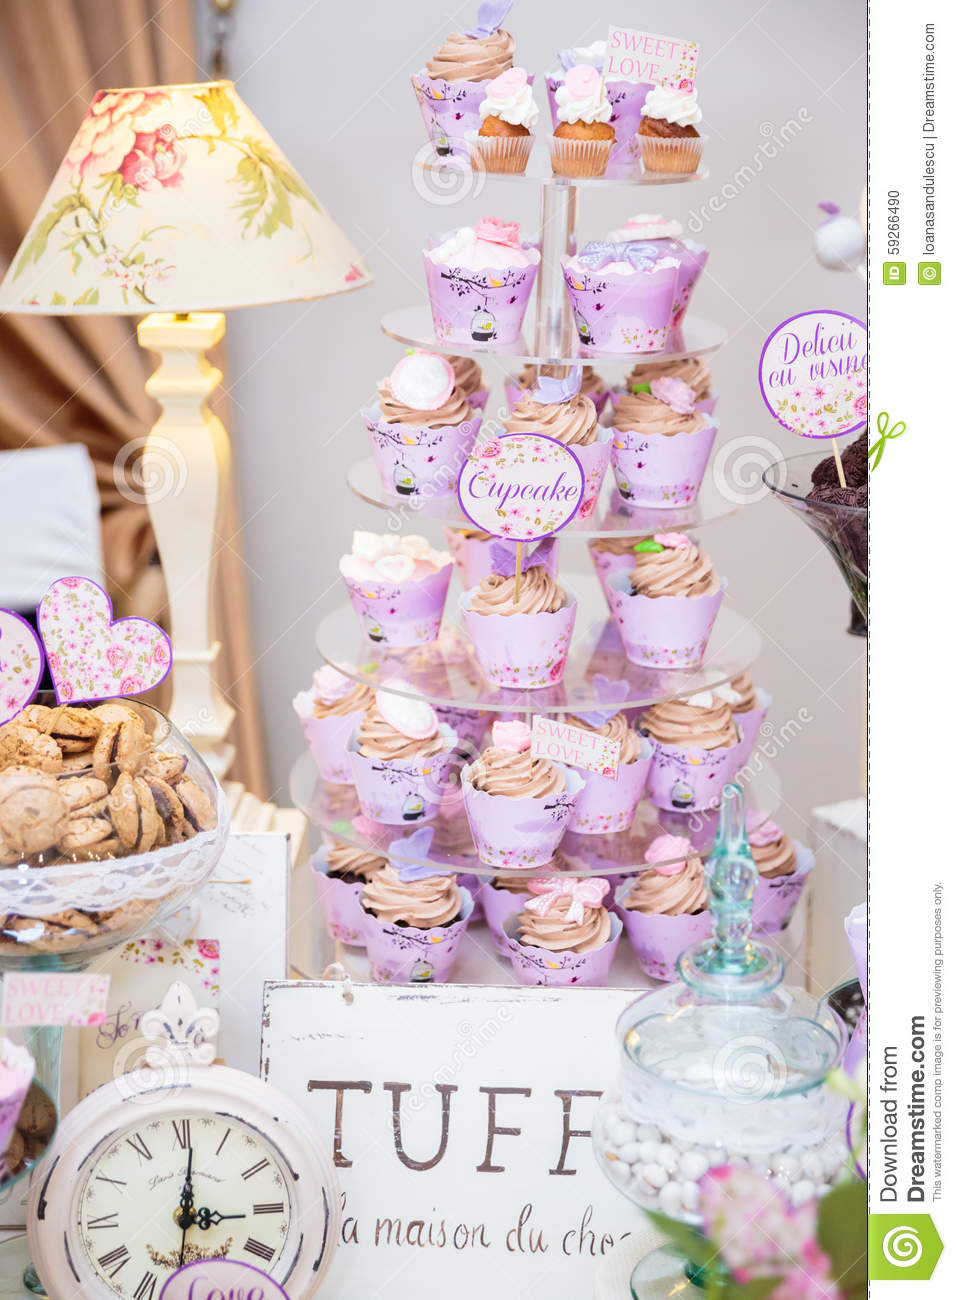 stock photo wedding candy bar biscuits fruits macarons cupcakes image wedding candy bar Wedding Candy bar